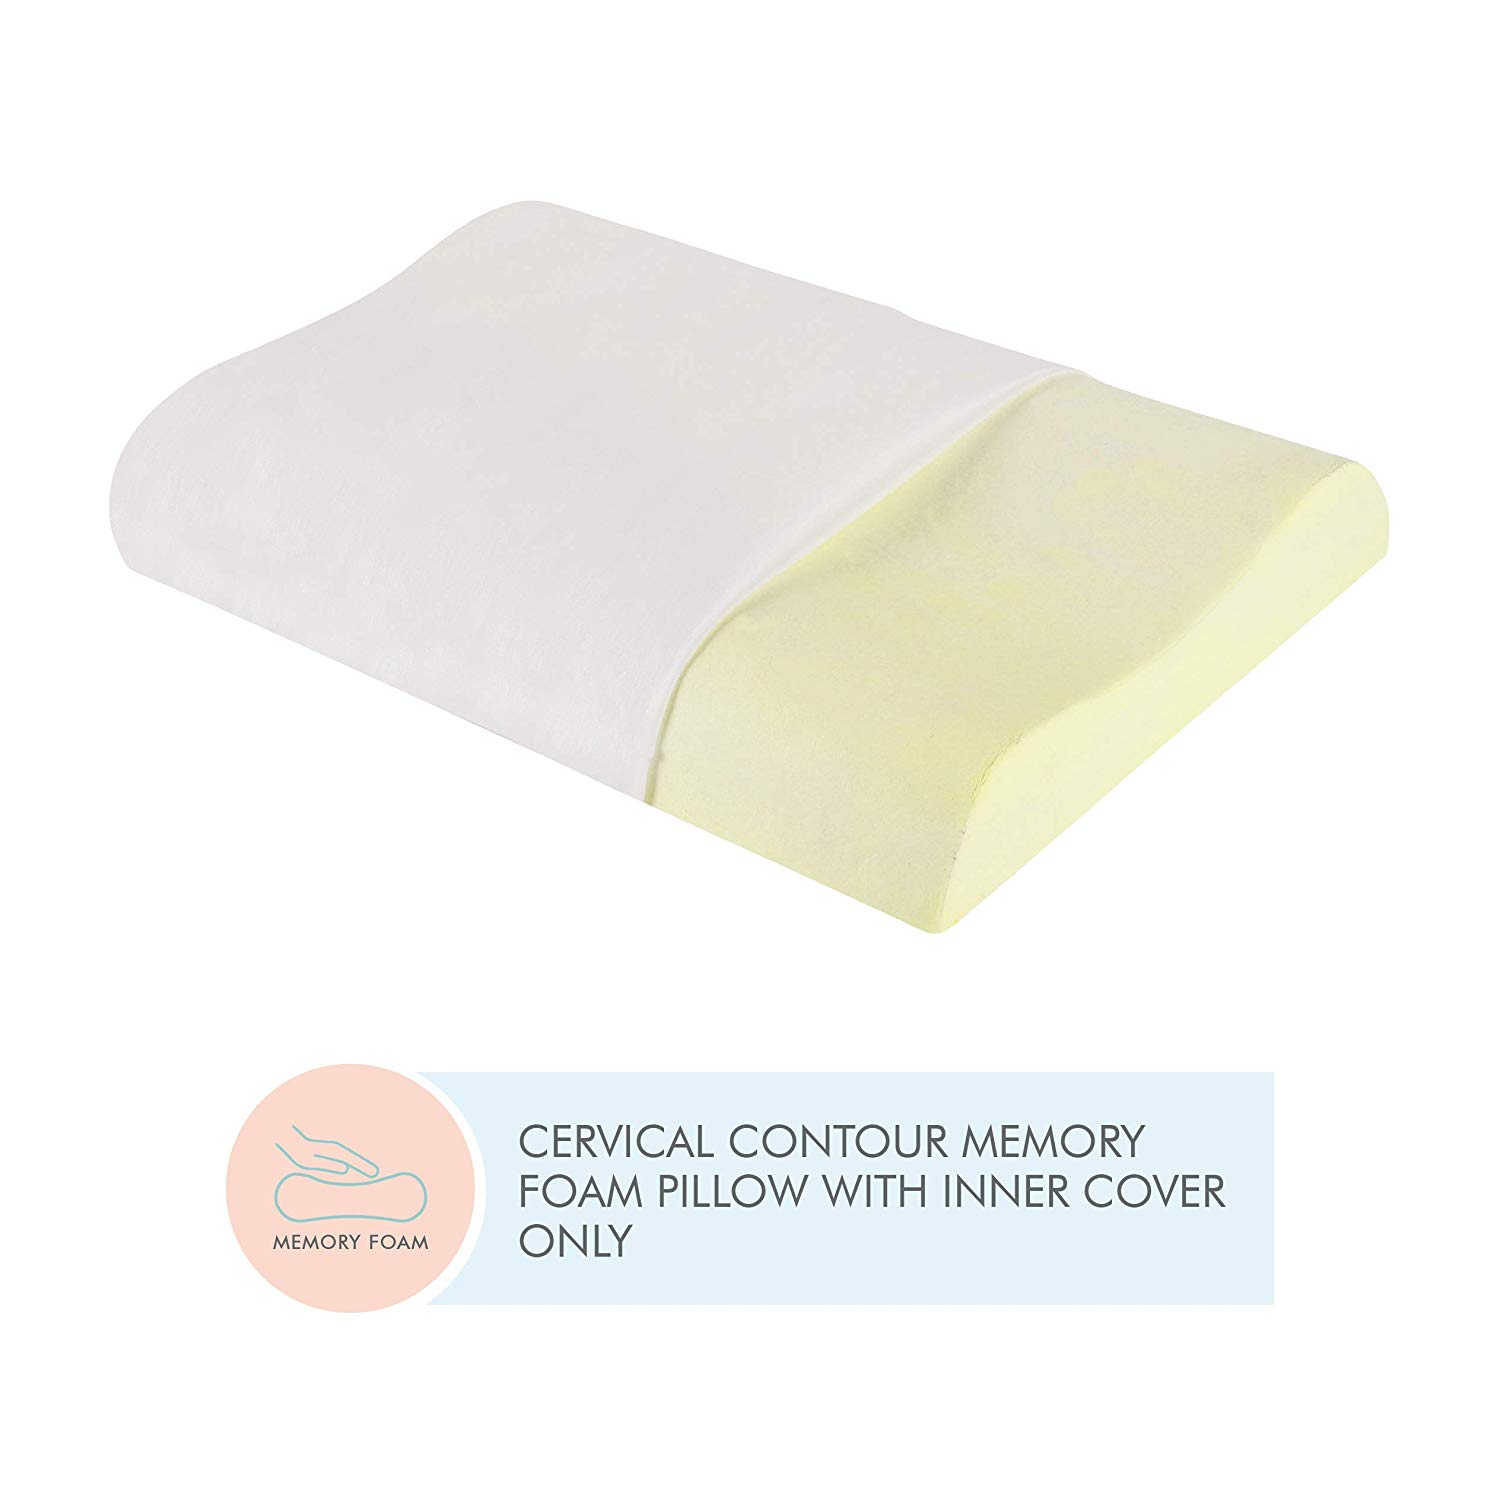 The Contour Cervical Orthopedic White Willow Pillow